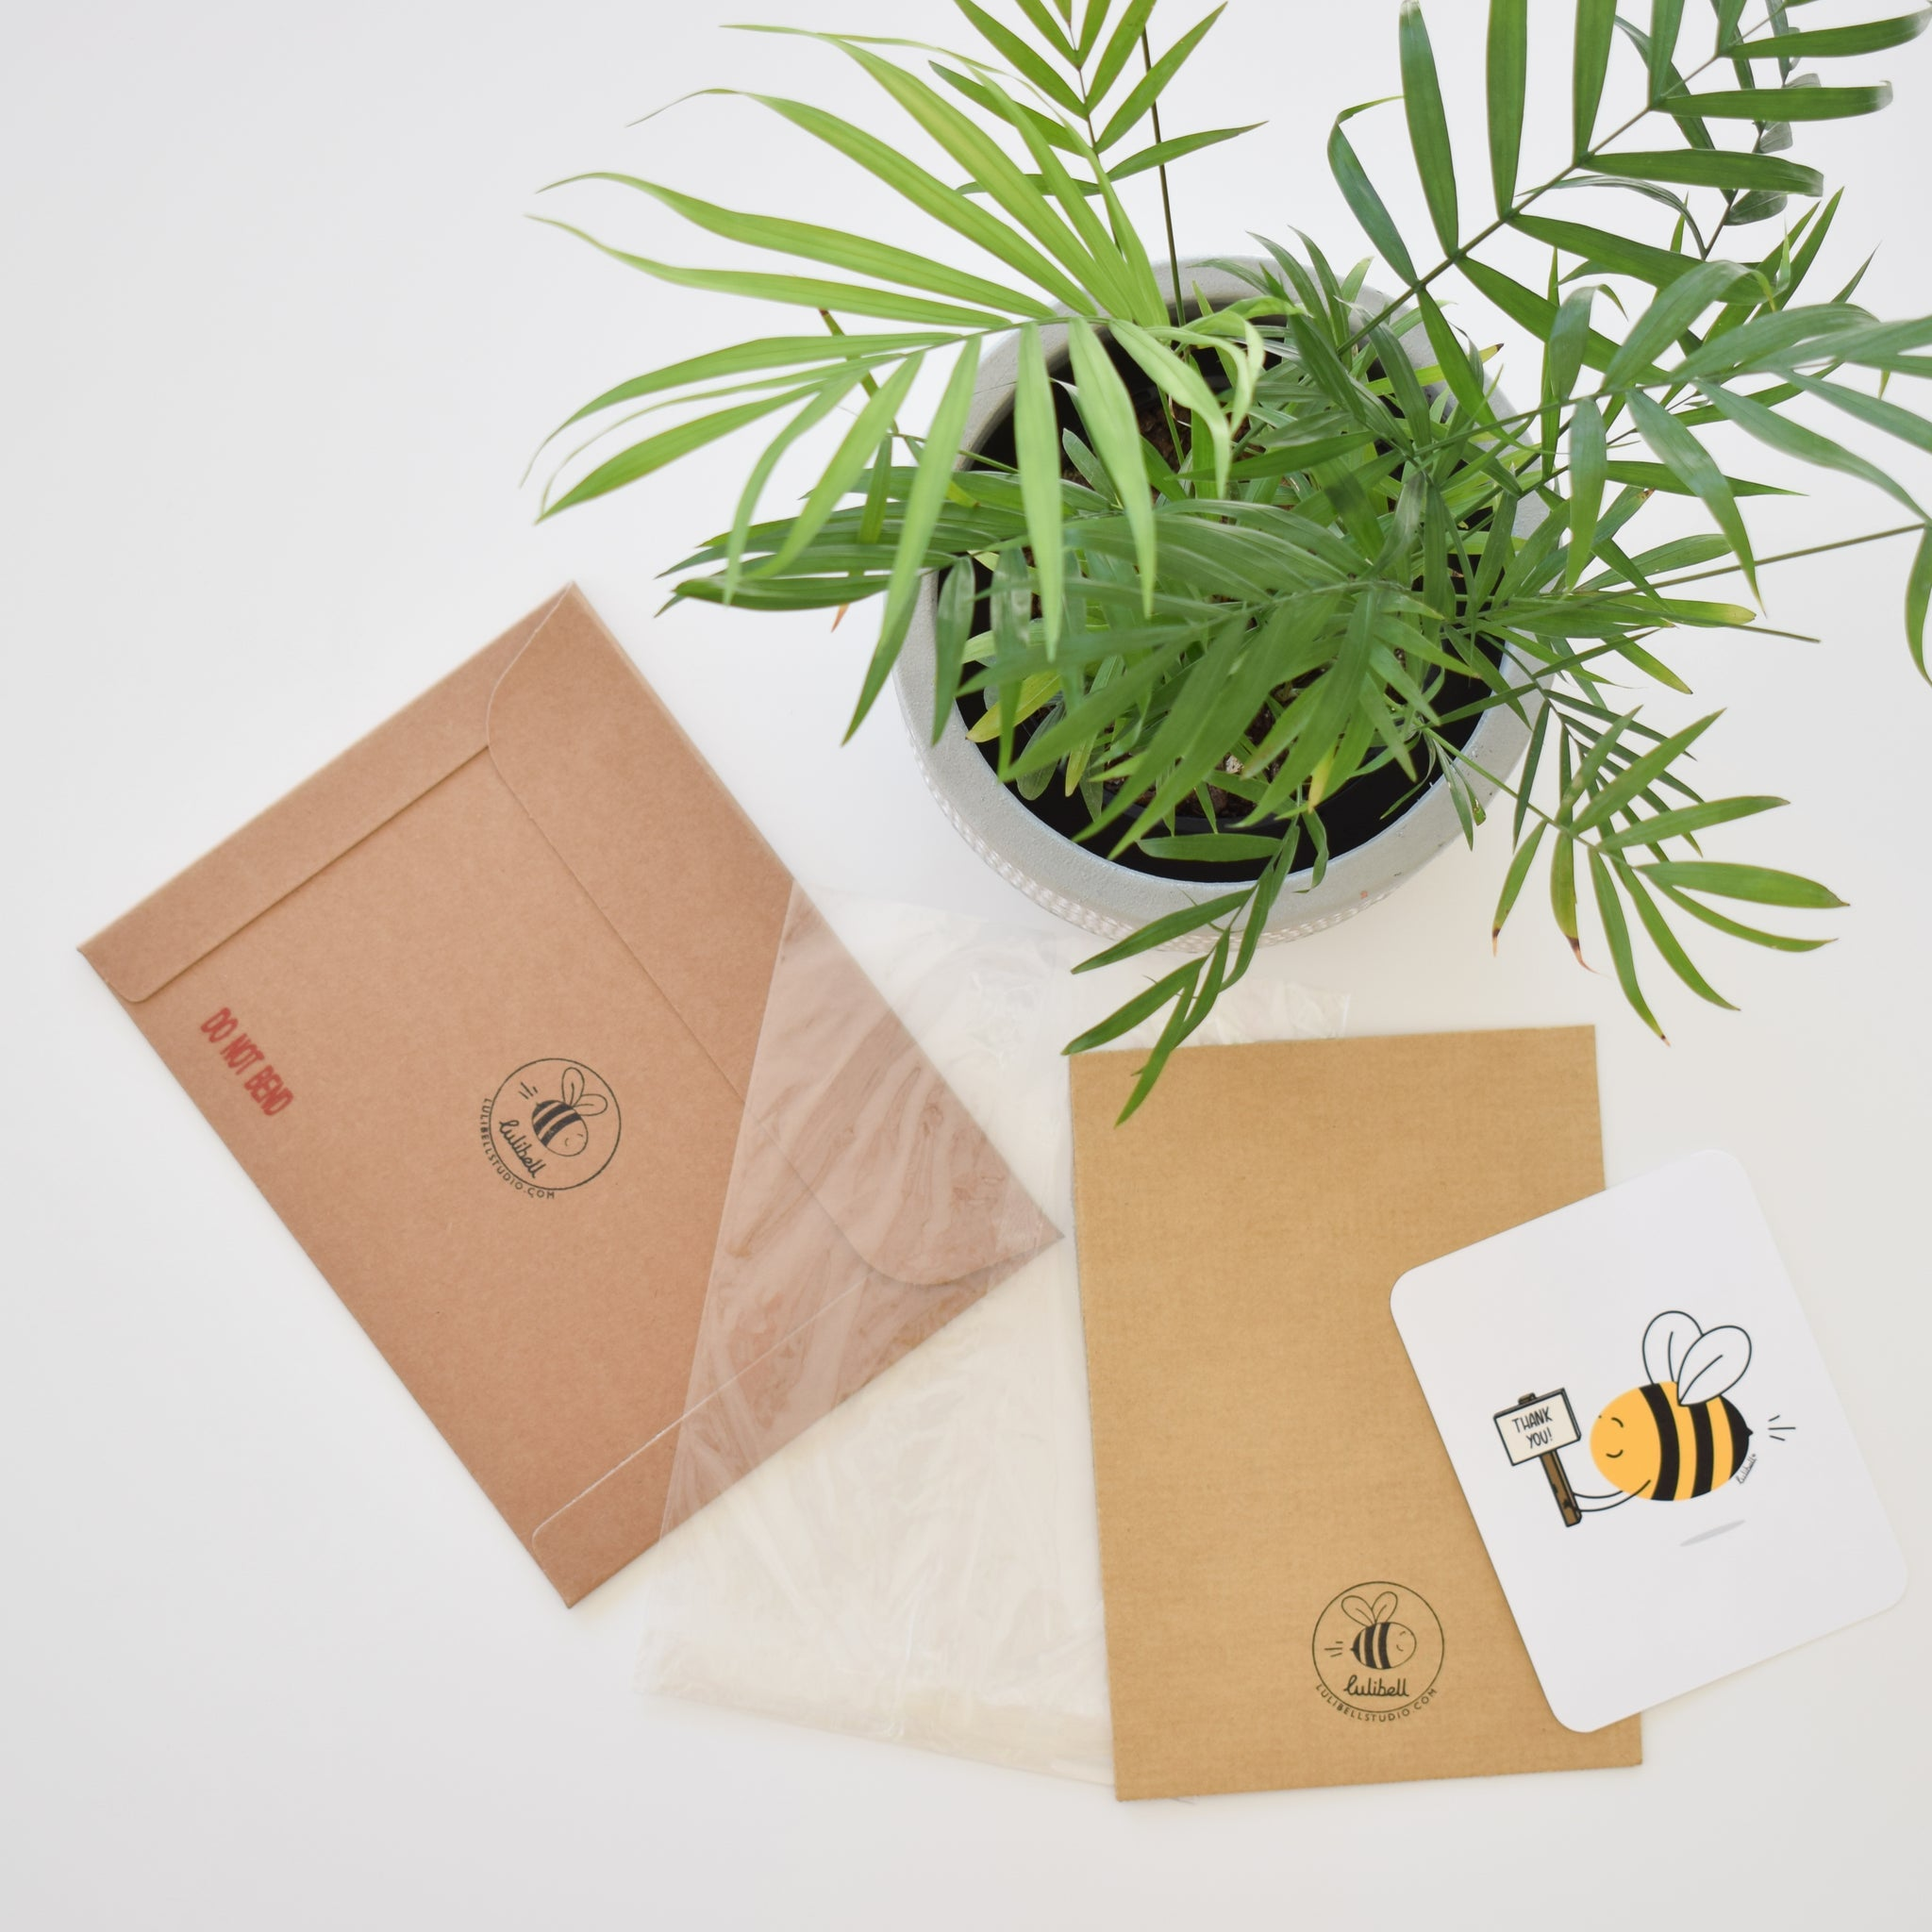 Flat lay photograph of Lulibell Studio eco friendly packaging - brown rigid mailer envelope with logo and 'do not bend' stamp, clear cellophane bag, backing board with stamp, thank you card featuring a bee holding a sign saying 'thank you'.